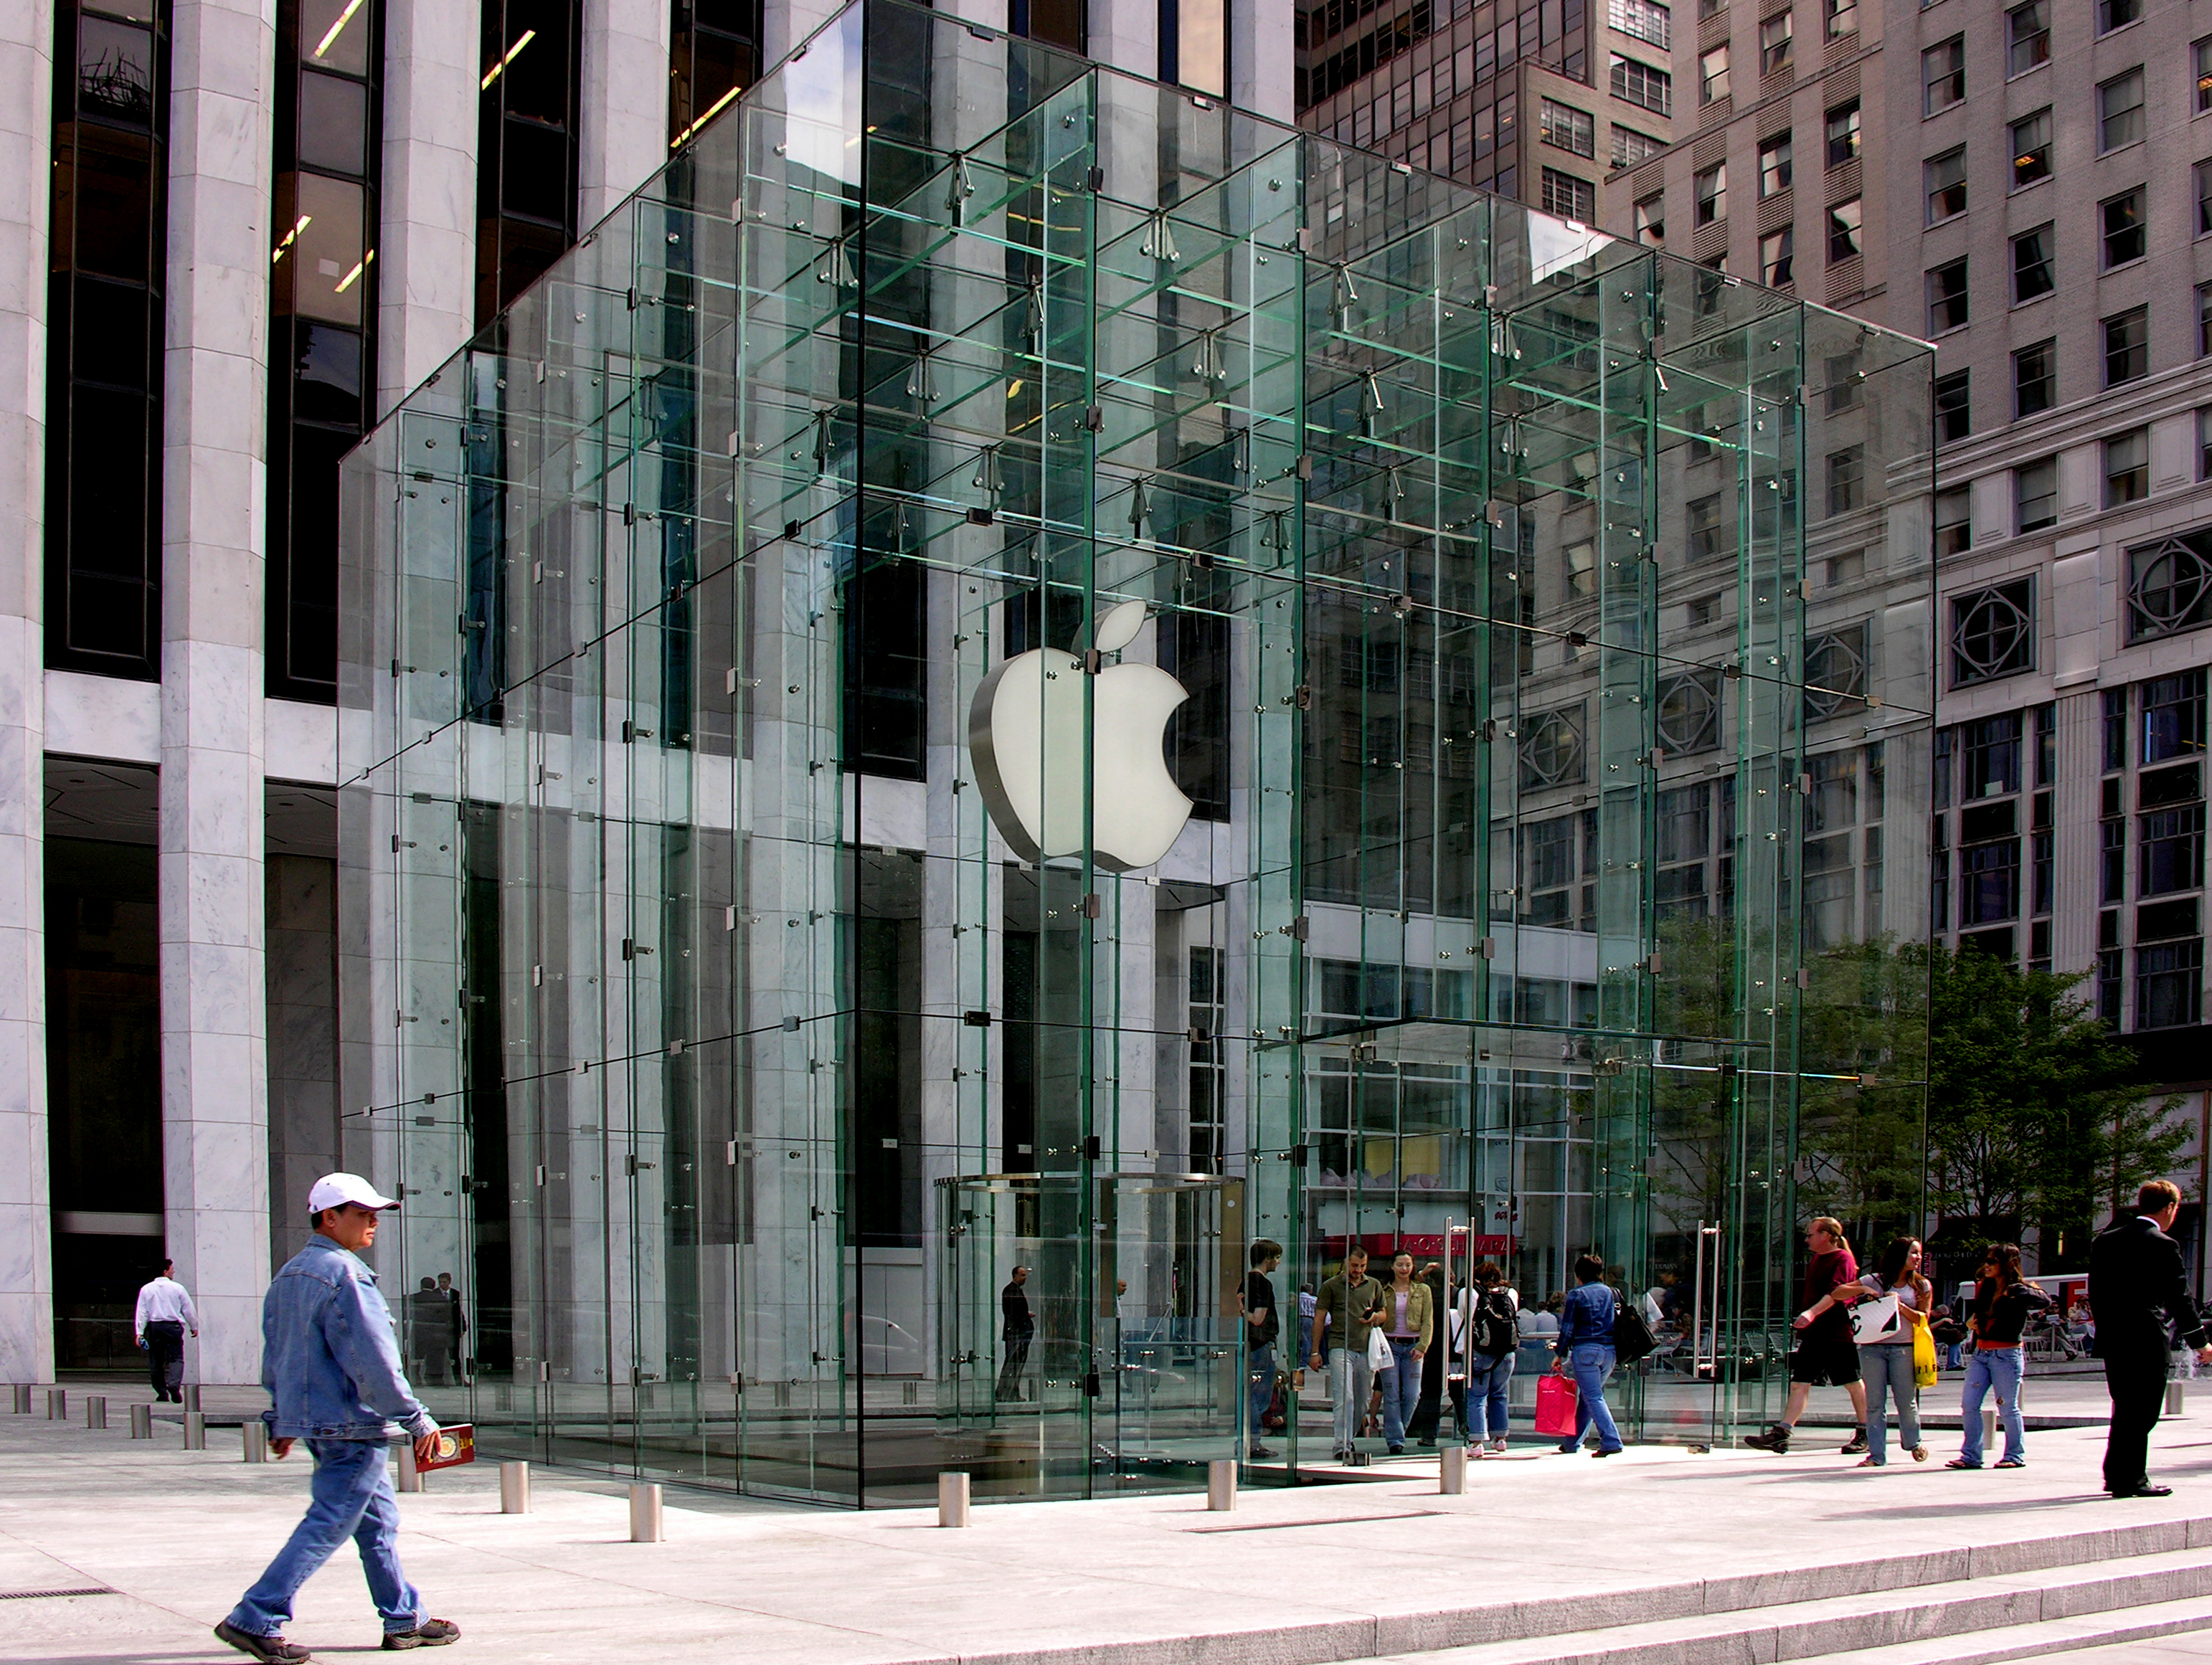 http://upload.wikimedia.org/wikipedia/commons/0/0c/Apple_store_fifth_avenue.jpg